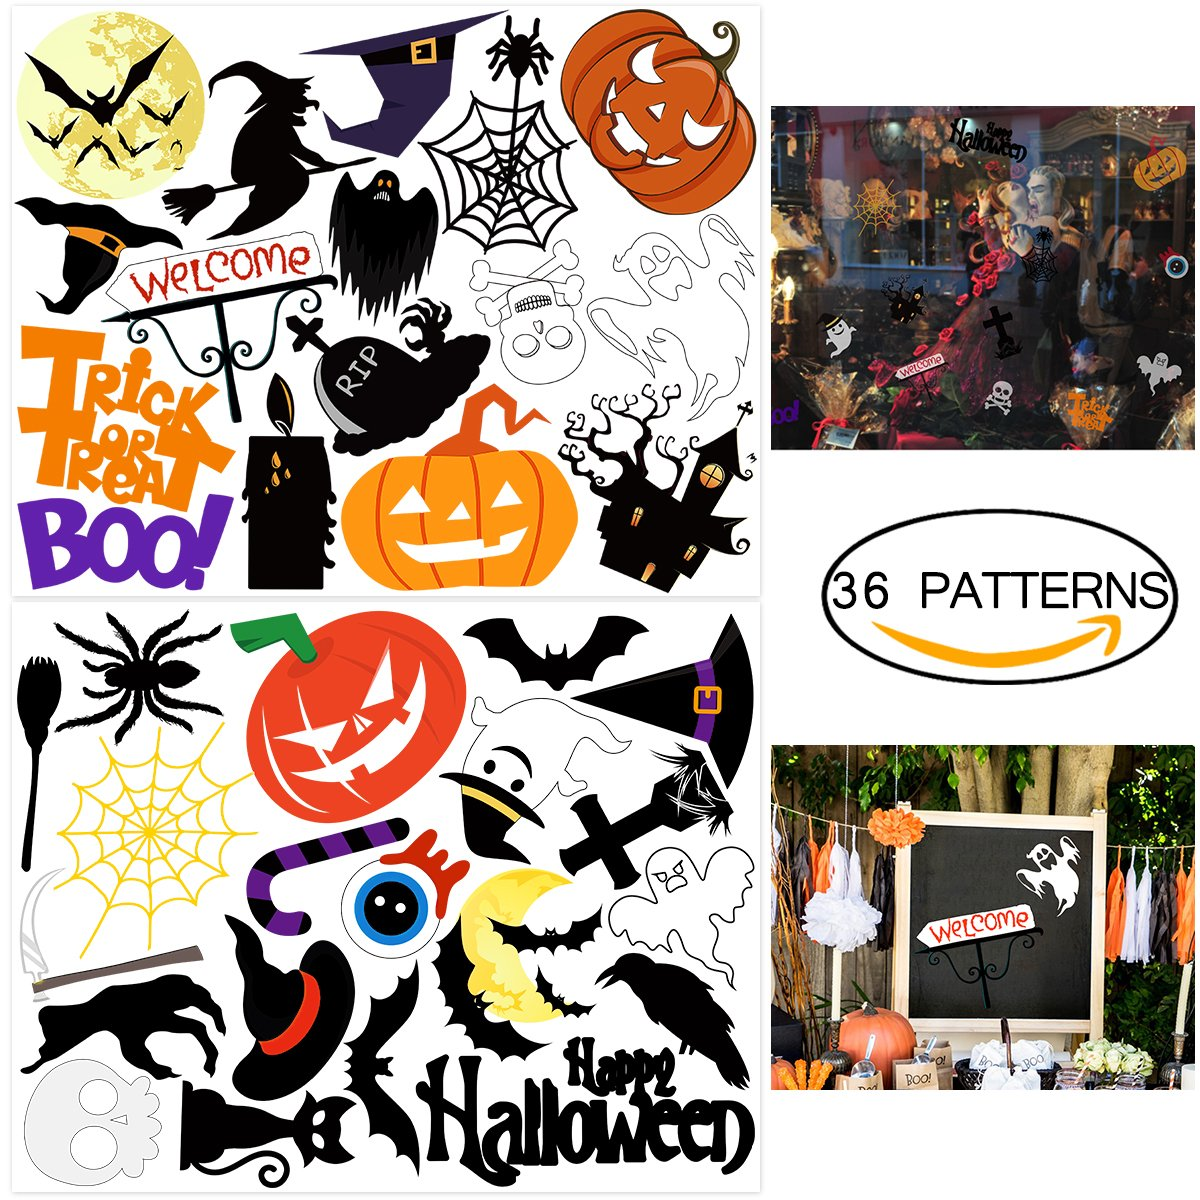 picture regarding Halloween Stickers Printable called Inexpensive Printable Halloween Stickers, come across Printable Halloween